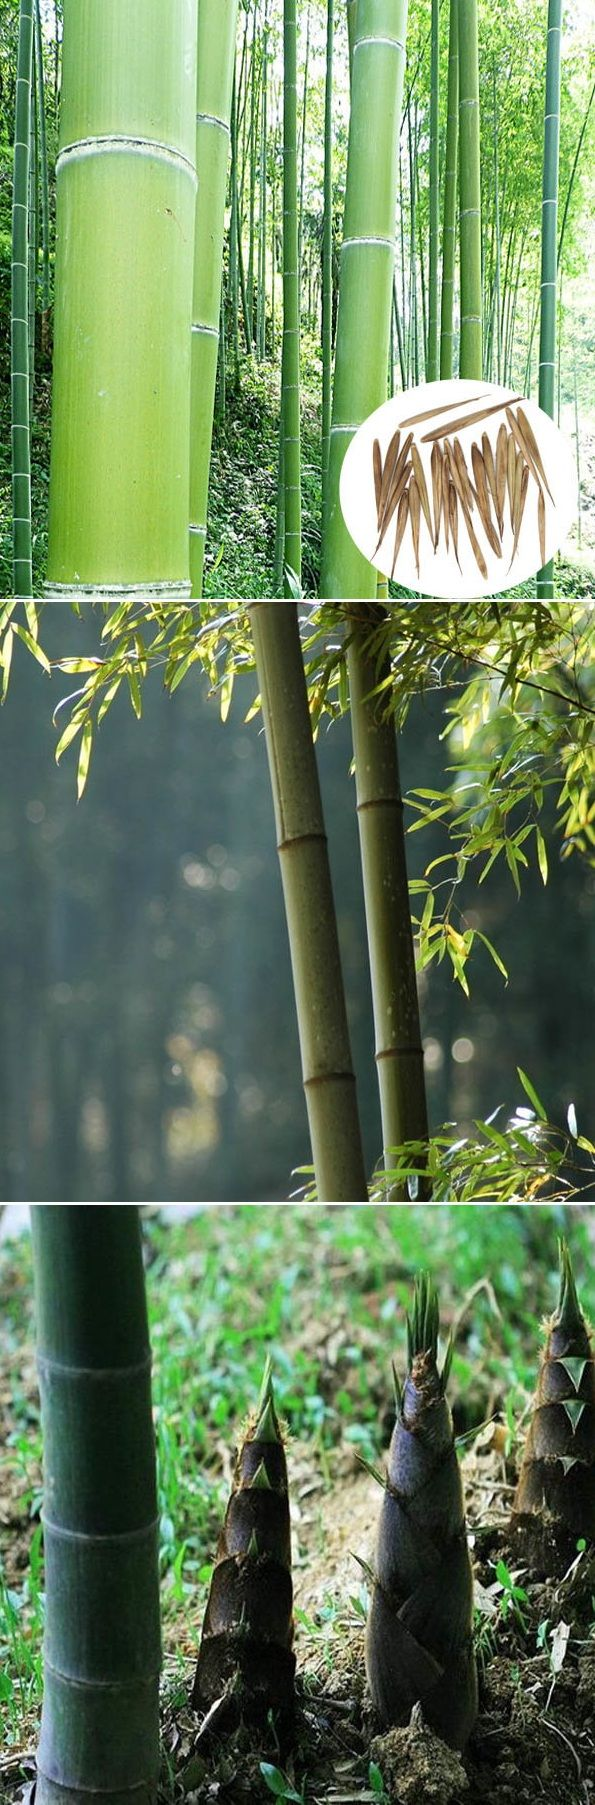 US$3.29  100pcs Moso bamboo seeds, also Mao zhu in Chinese pinyin. Evergreen plants for Bamboo gardens & parks